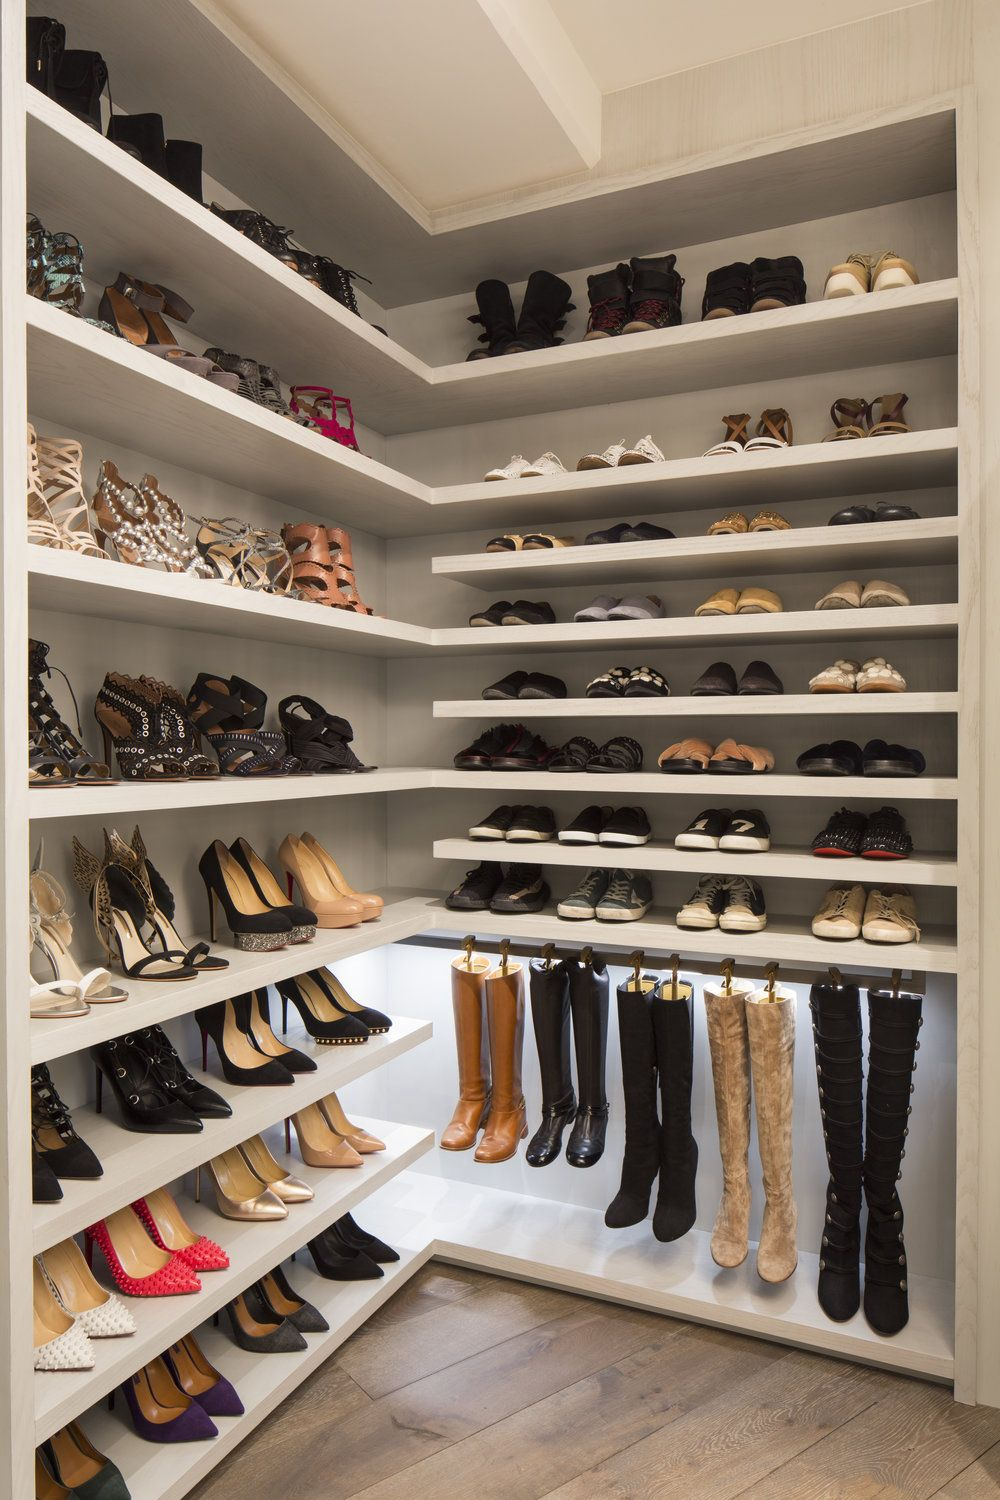 Pin by Andie Prier on HouseWhere's | Closet shoe storage